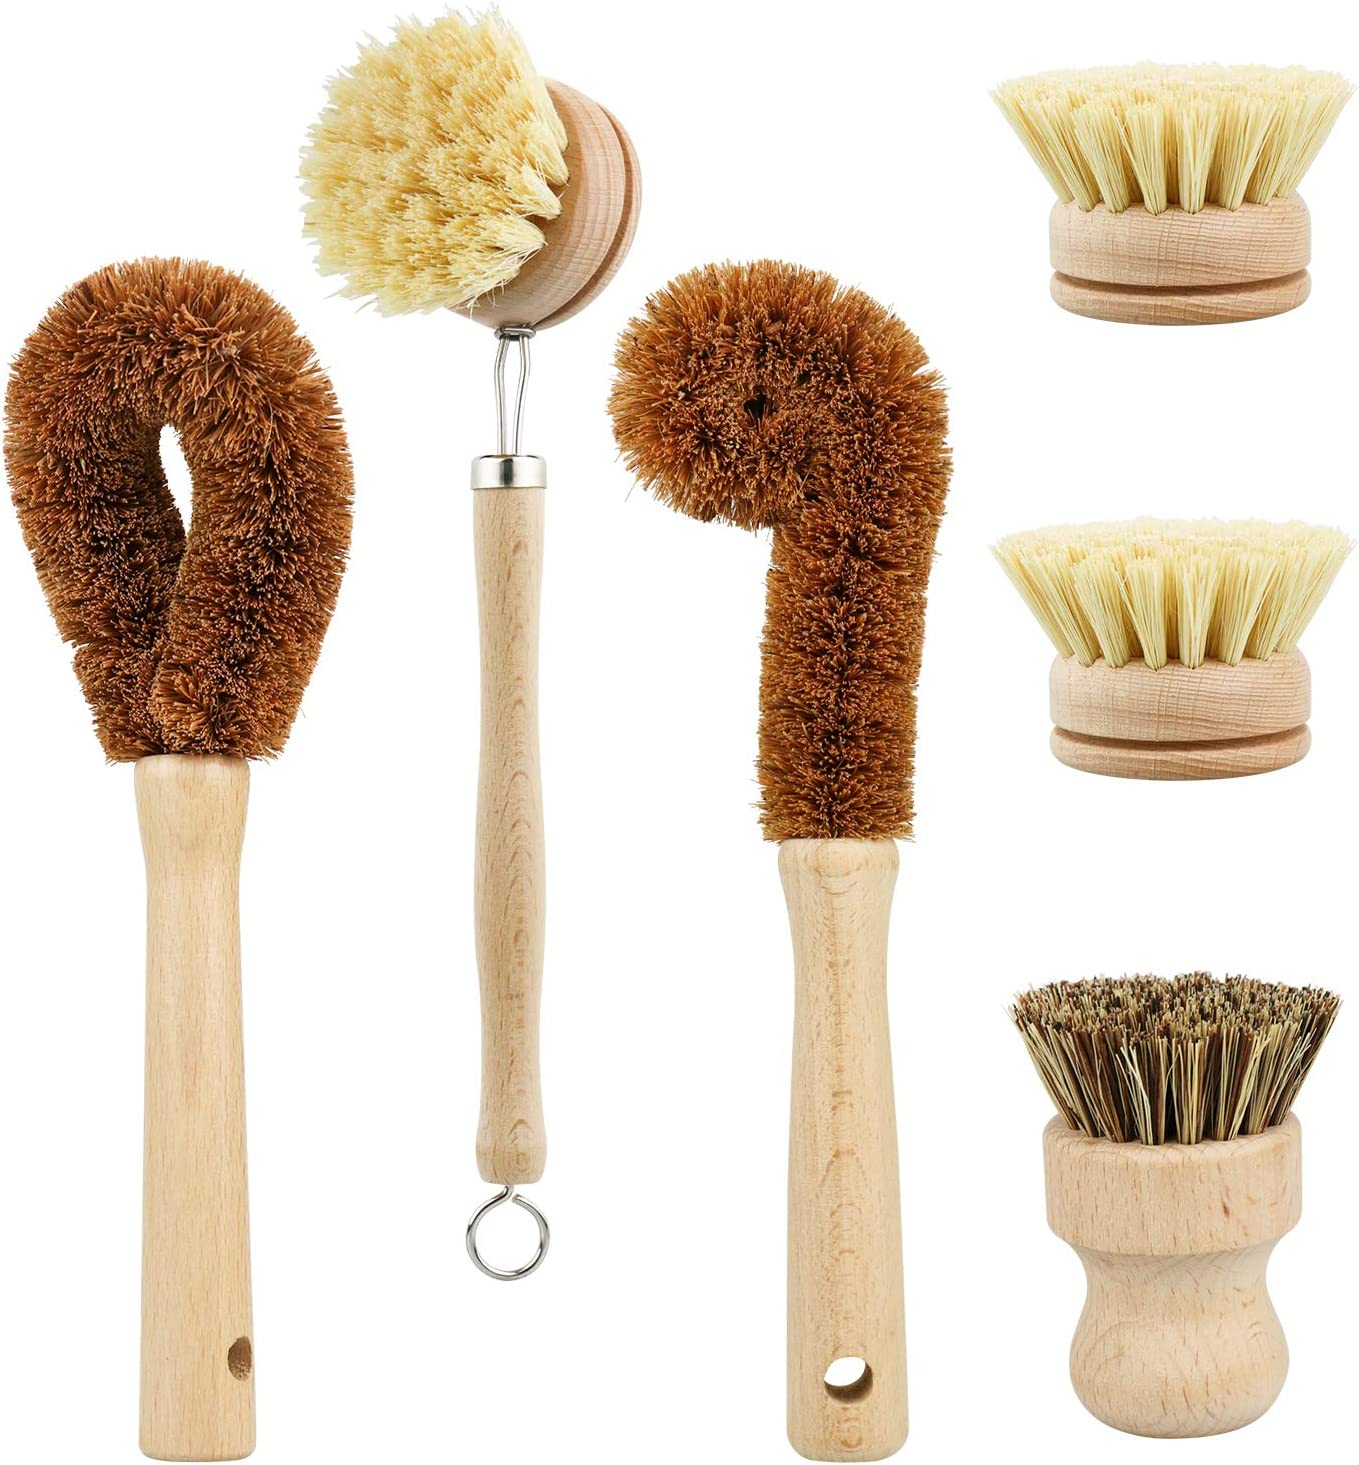 Plant Based Cleaning Brush Set, 6 Piece for Vegetable, and Kitchen Dish Cleaning, Sisal & Coconut Fibers with Bamboo Handles, Zero Waste & Biodegradable Kitchen Brushes